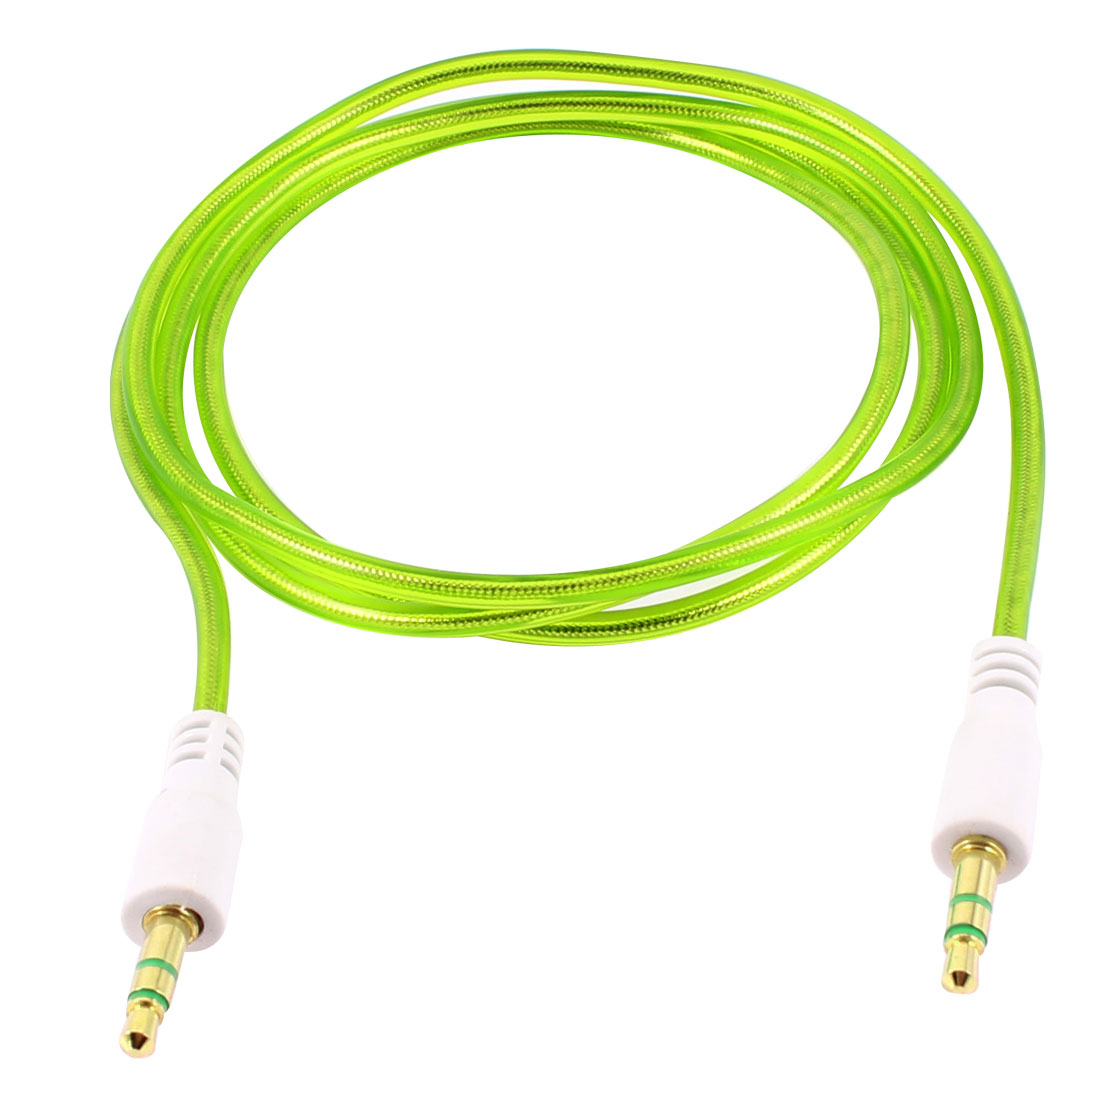 3.4ft 3.5mm Male to Male Jack Plug Audio Cable Green for Mobile Phone Mp4 Mp3